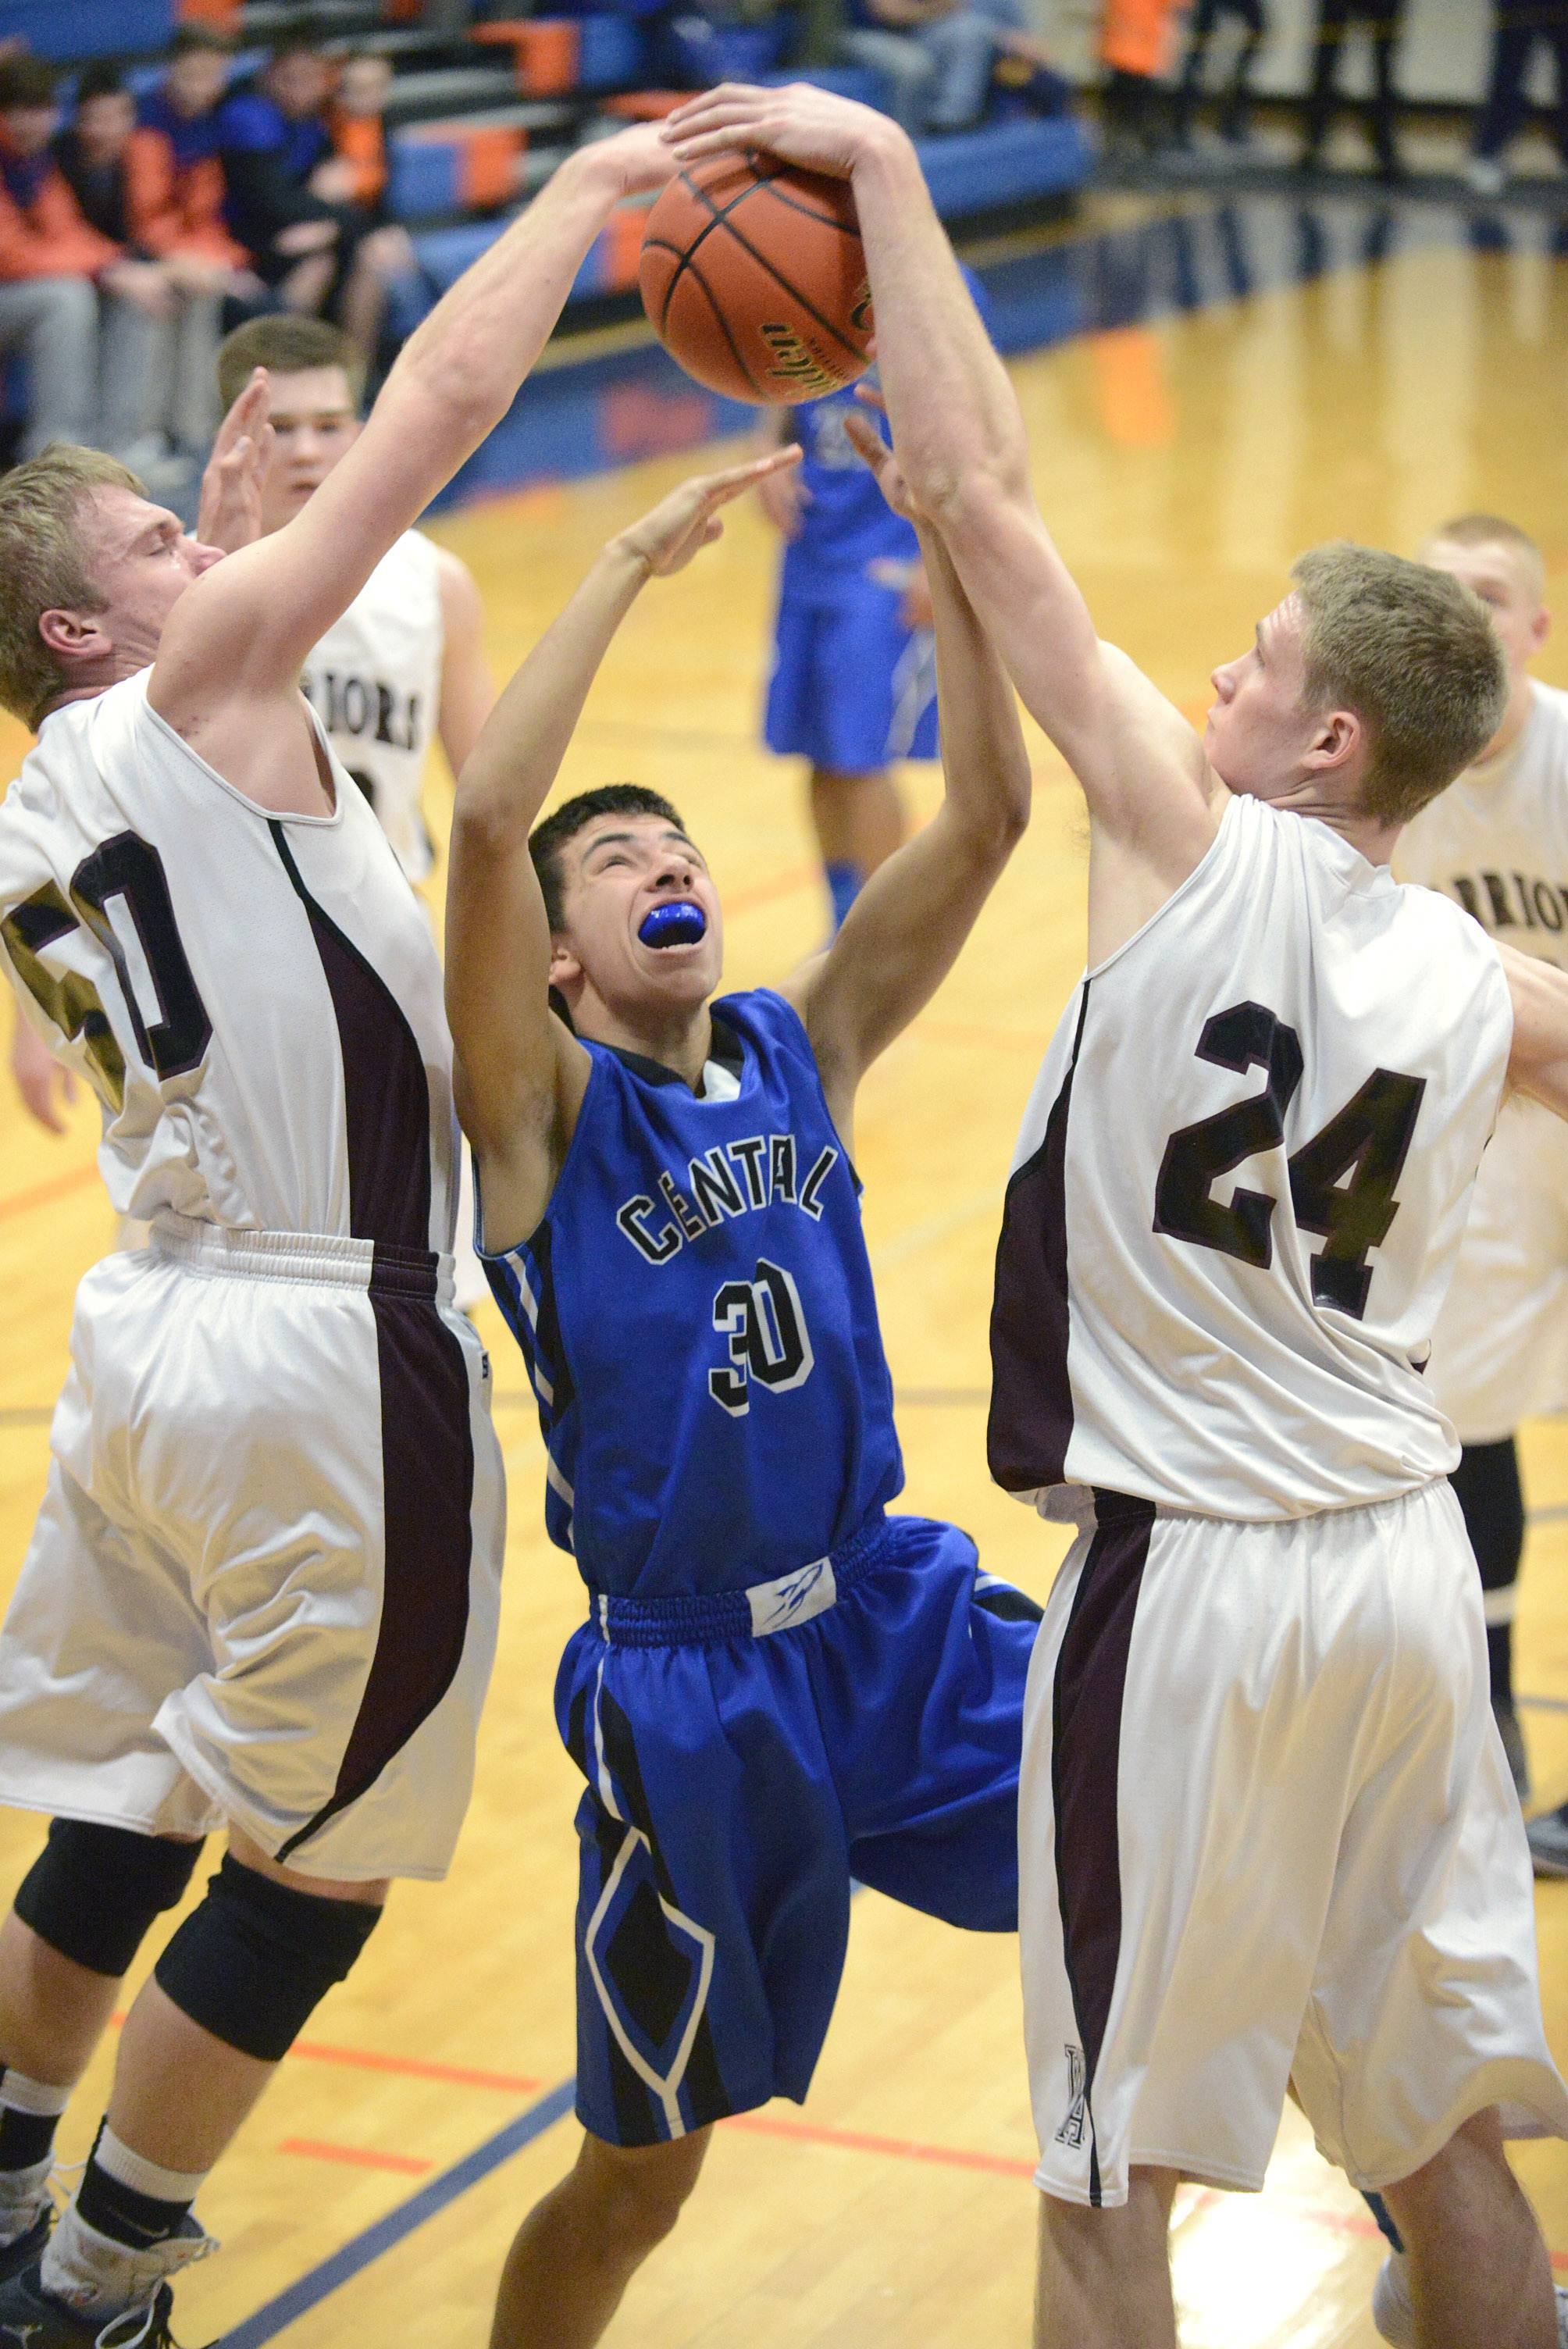 Burlington Central's James Raney is denied a basket by Wheaton Academy's Jacob Lindstedt, left, and Gordon Behr, right, in the second quarter.